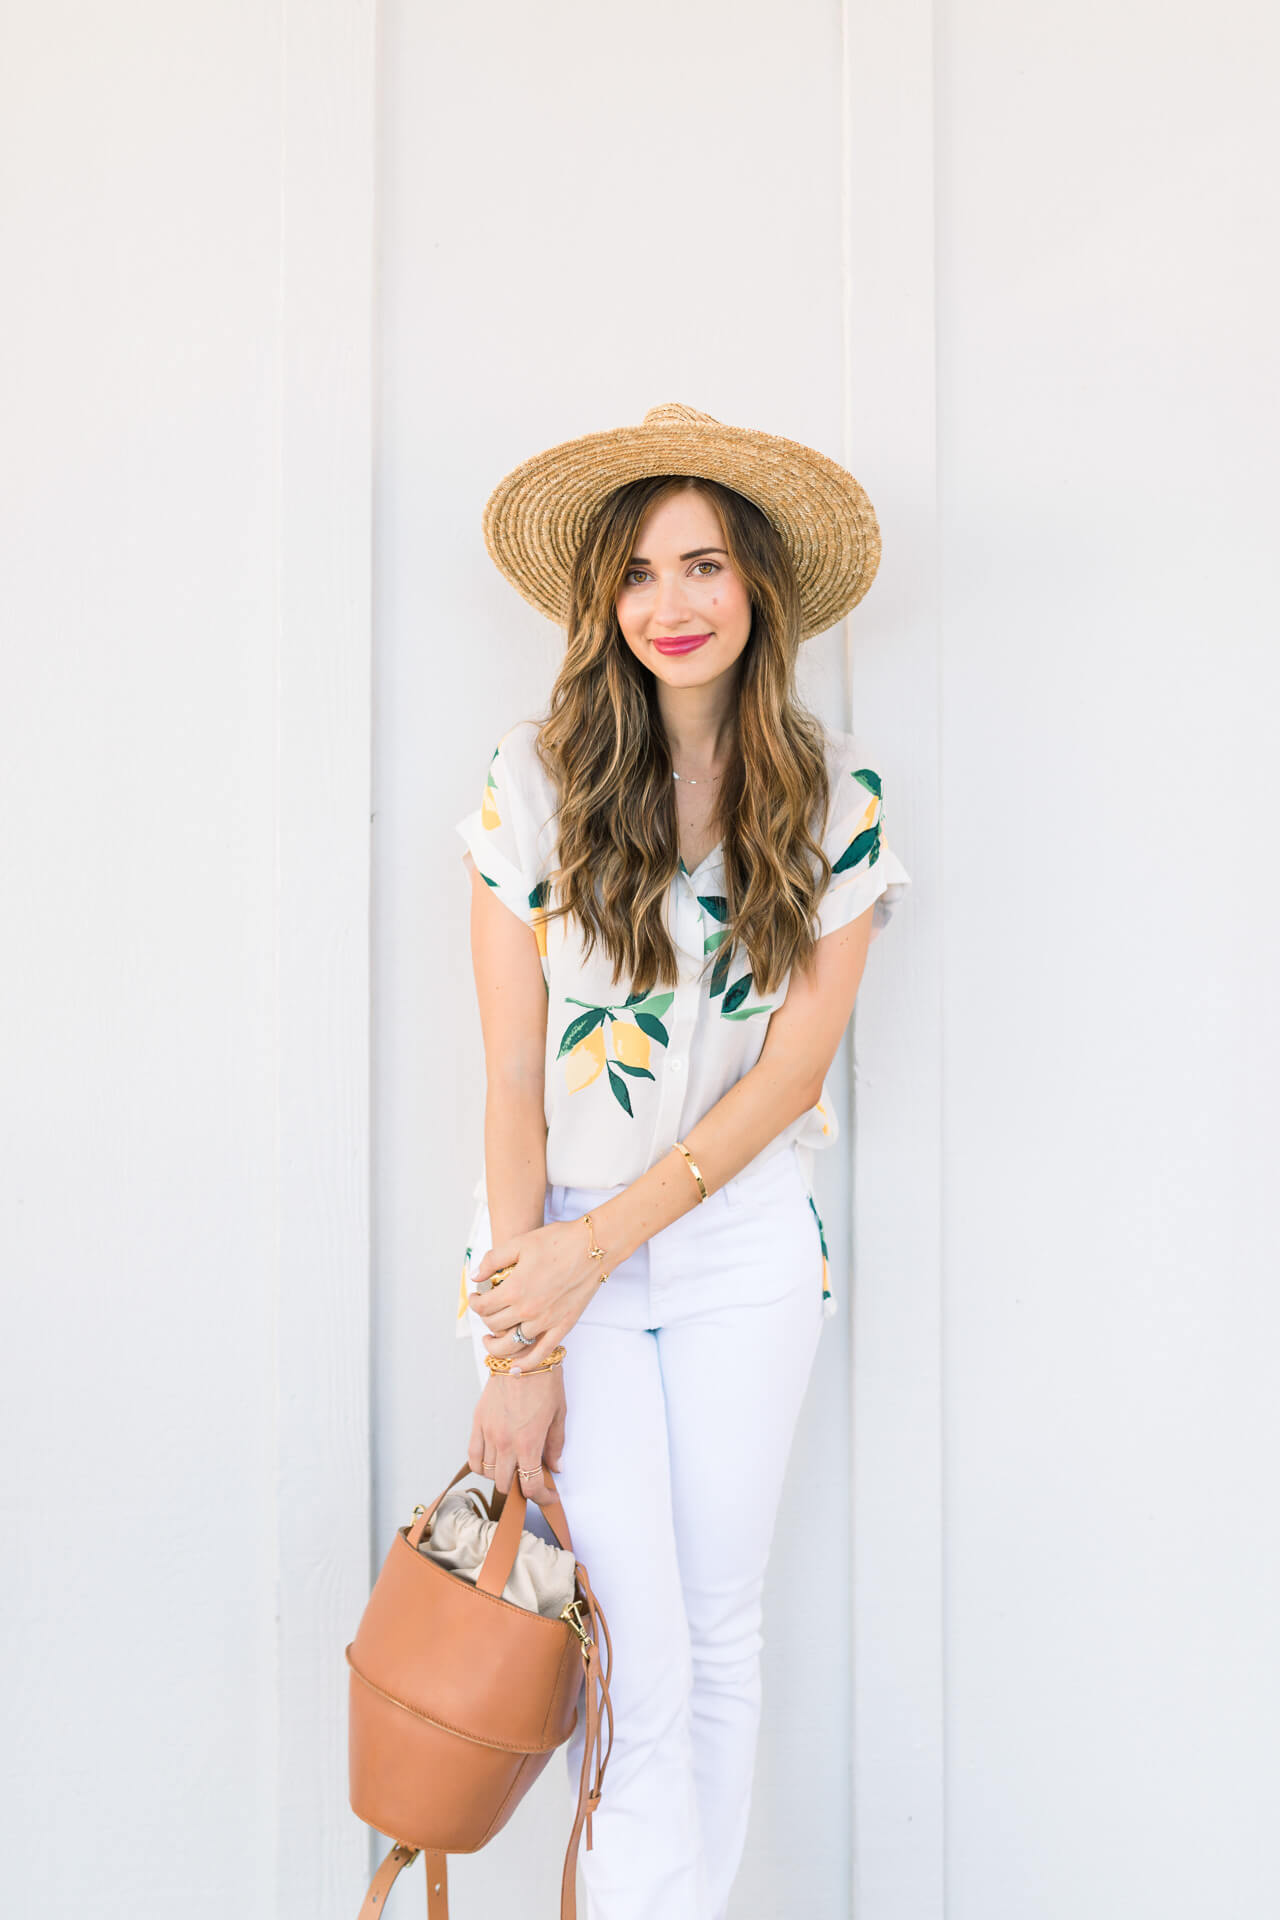 styling white jeans for summertime - M Loves M Los Angeles and Orange County fashion and lifestyle blogger @marmar